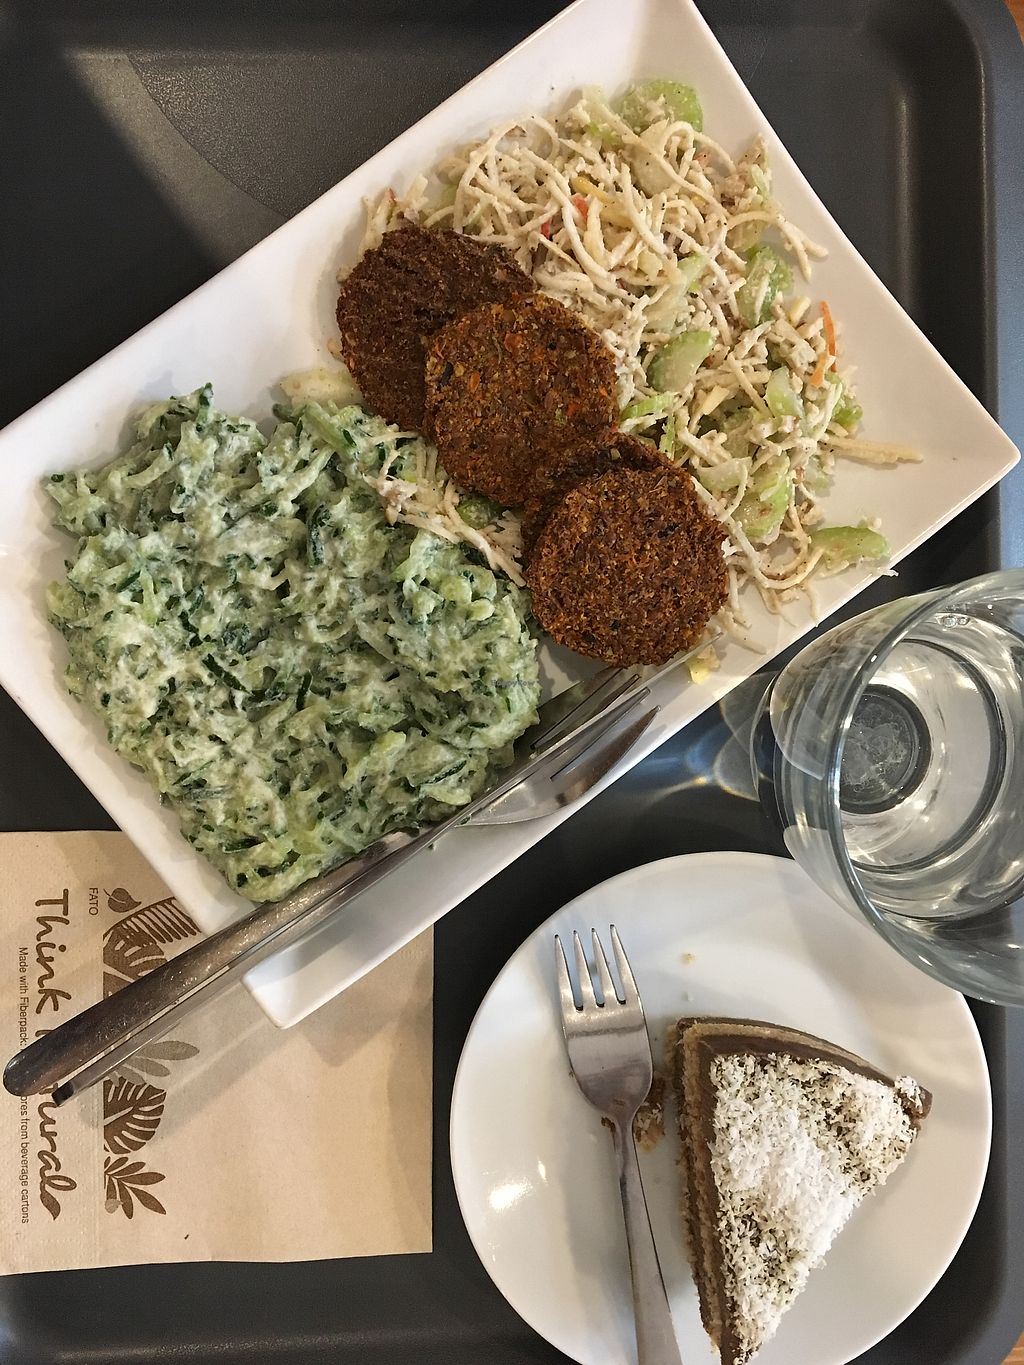 """Photo of Veggie Nyers  by <a href=""""/members/profile/tcsengusz"""">tcsengusz</a> <br/>Variations of foods offered as menu and a cake <br/> September 12, 2017  - <a href='/contact/abuse/image/69131/303714'>Report</a>"""